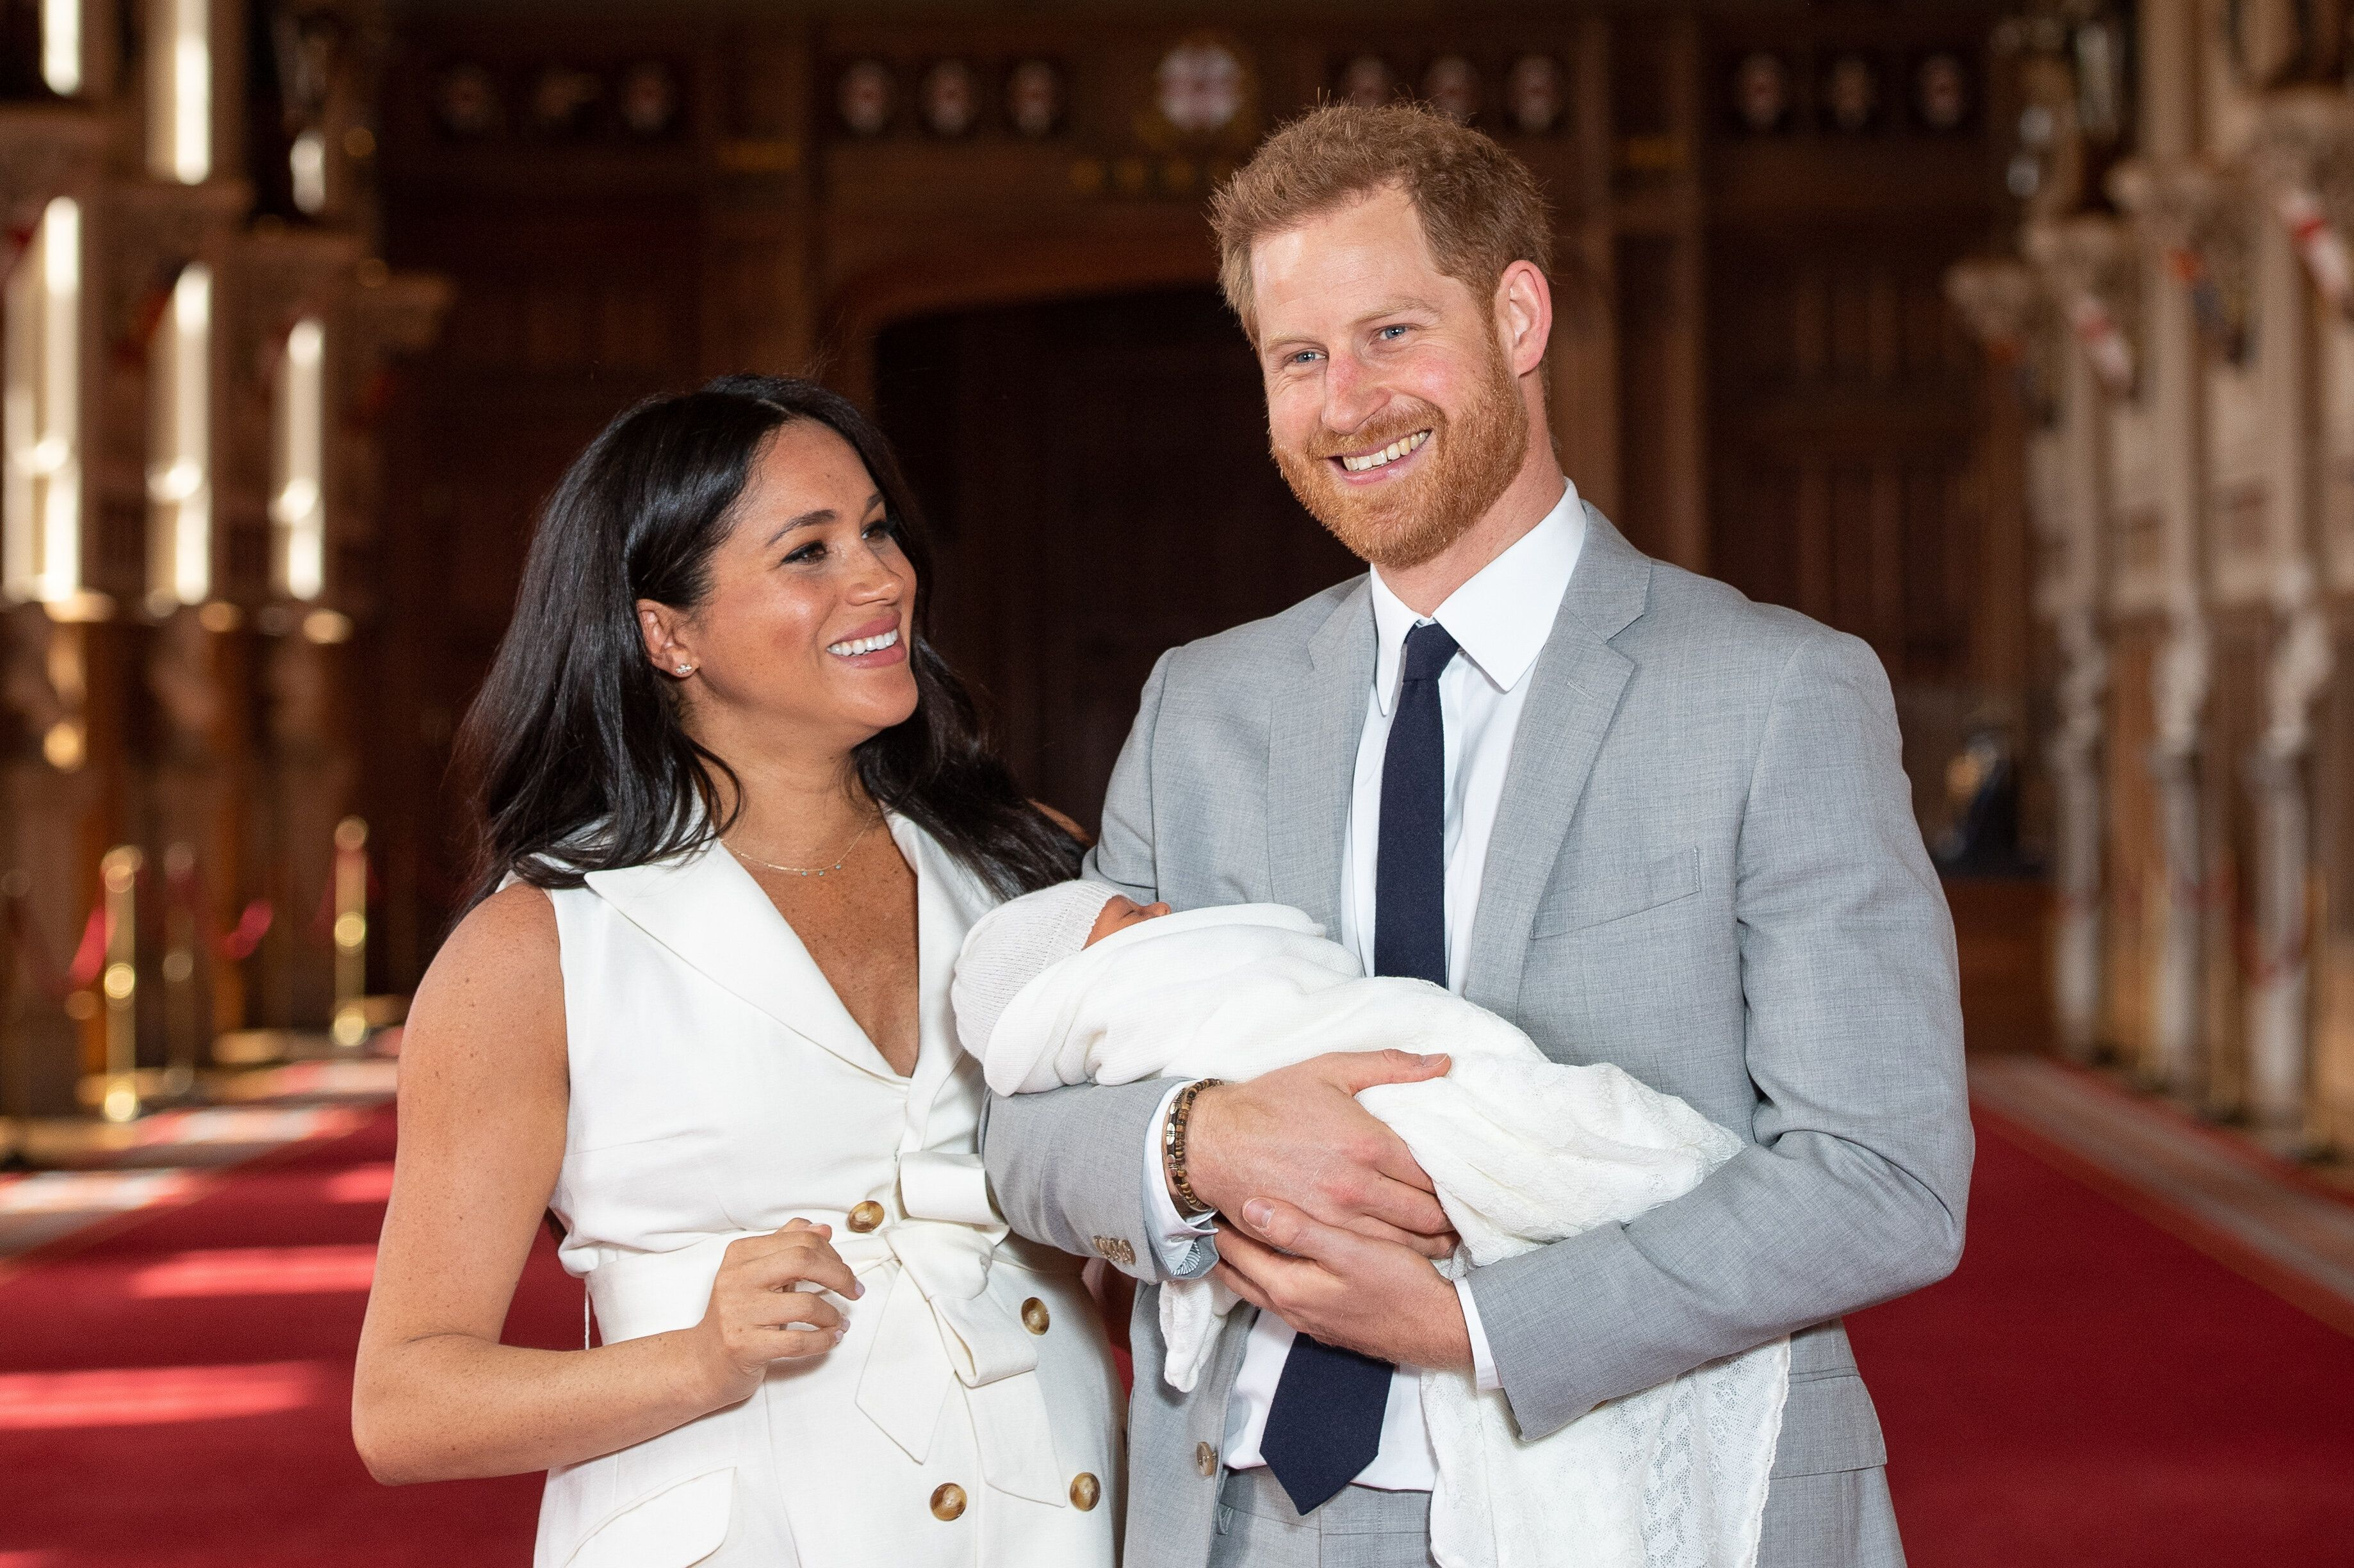 Prince Harry Says He 'Can't Imagine Life Without' Son Archie